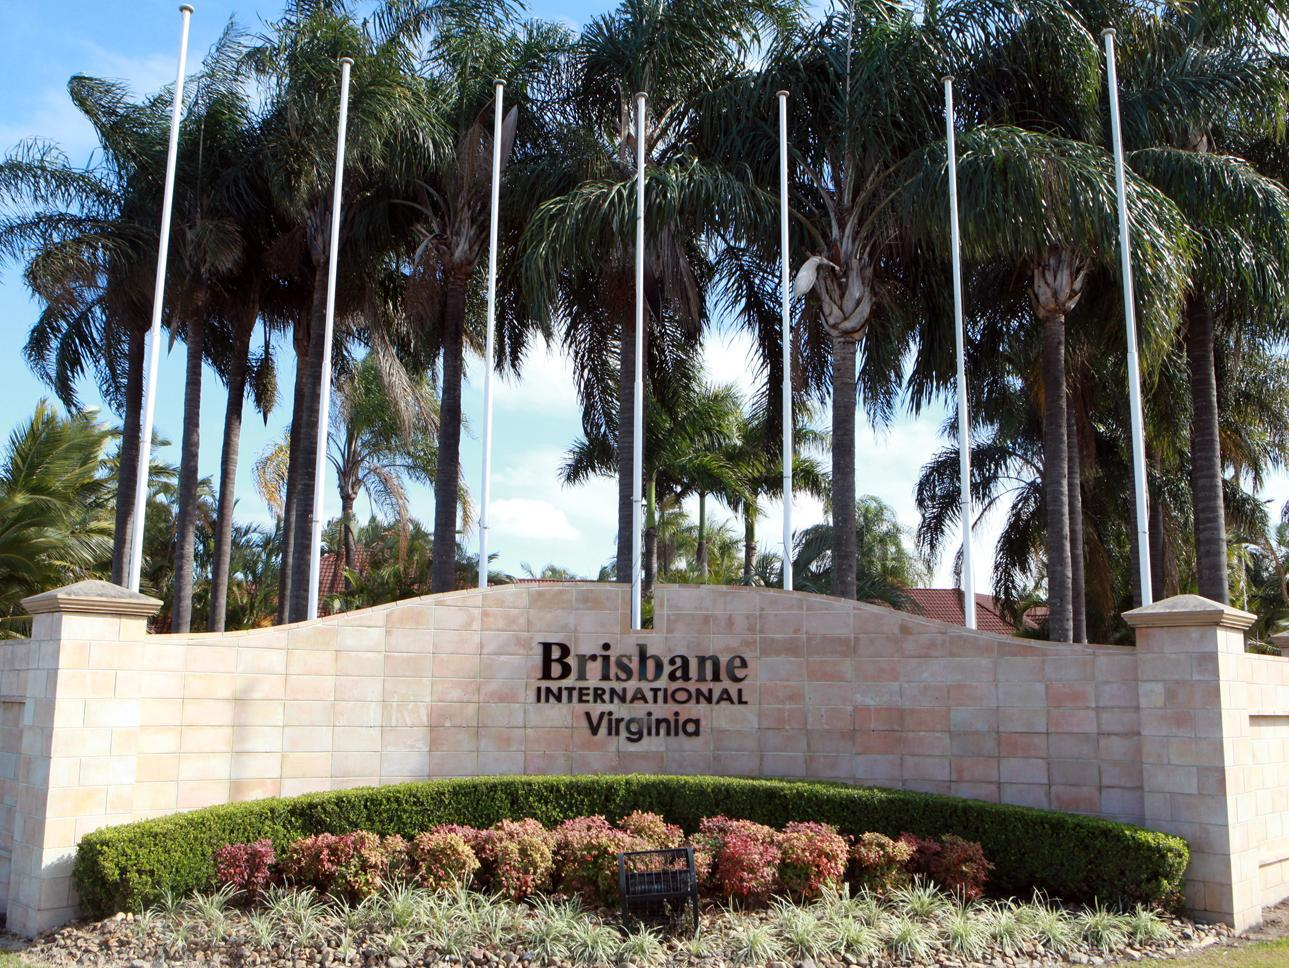 Brisbane International - Virginia Hotel